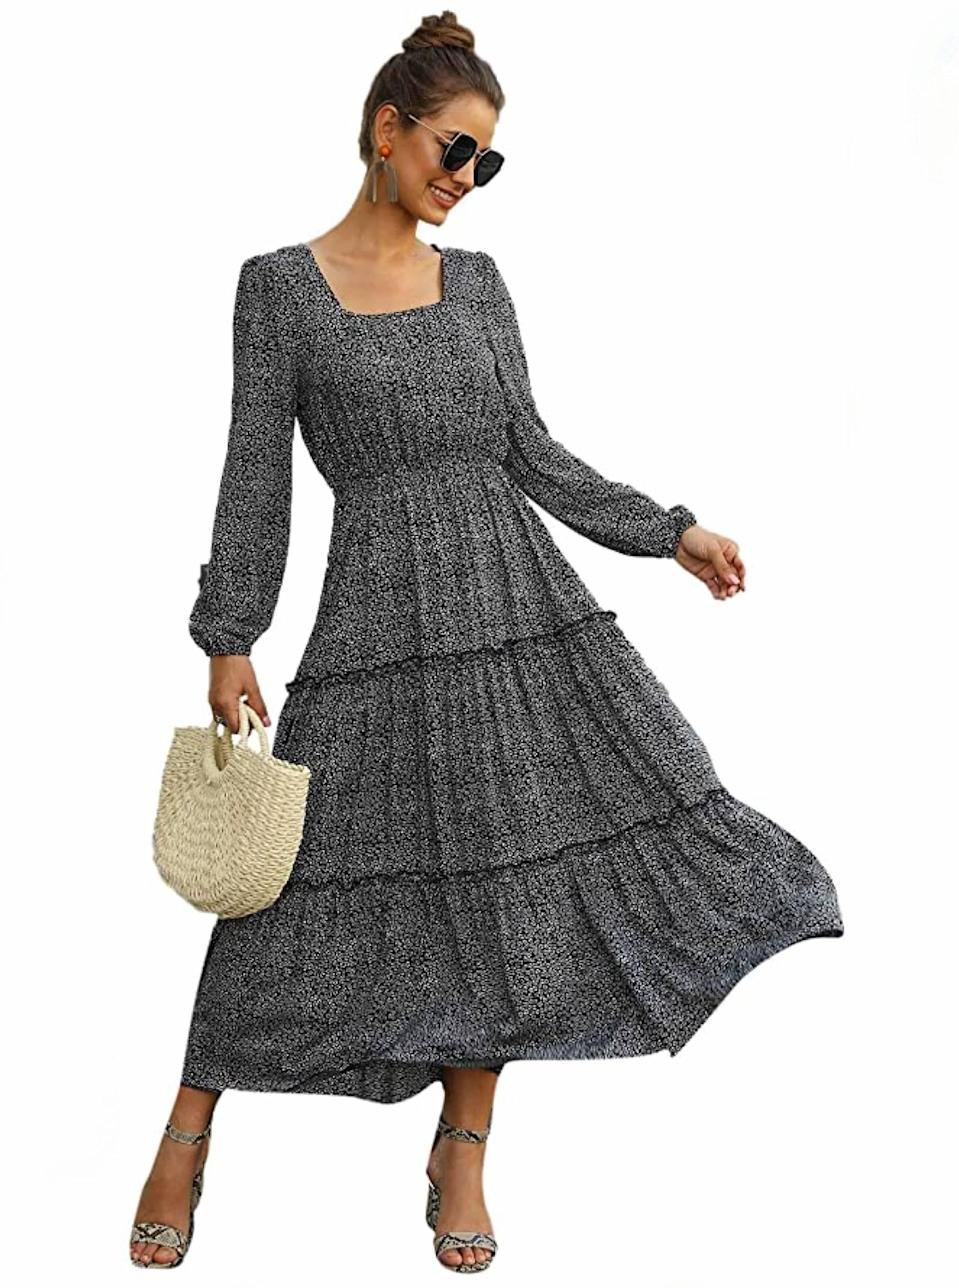 """From the square neckline to the slight balloon sleeves, we're here for the detailing on this flowy situation. $33, Amazon. <a href=""""https://www.amazon.com/SweatyRocks-Womens-Sleeve-Chiffon-Multicolor/dp/B0814JLN2G"""" rel=""""nofollow noopener"""" target=""""_blank"""" data-ylk=""""slk:Get it now!"""" class=""""link rapid-noclick-resp"""">Get it now!</a>"""